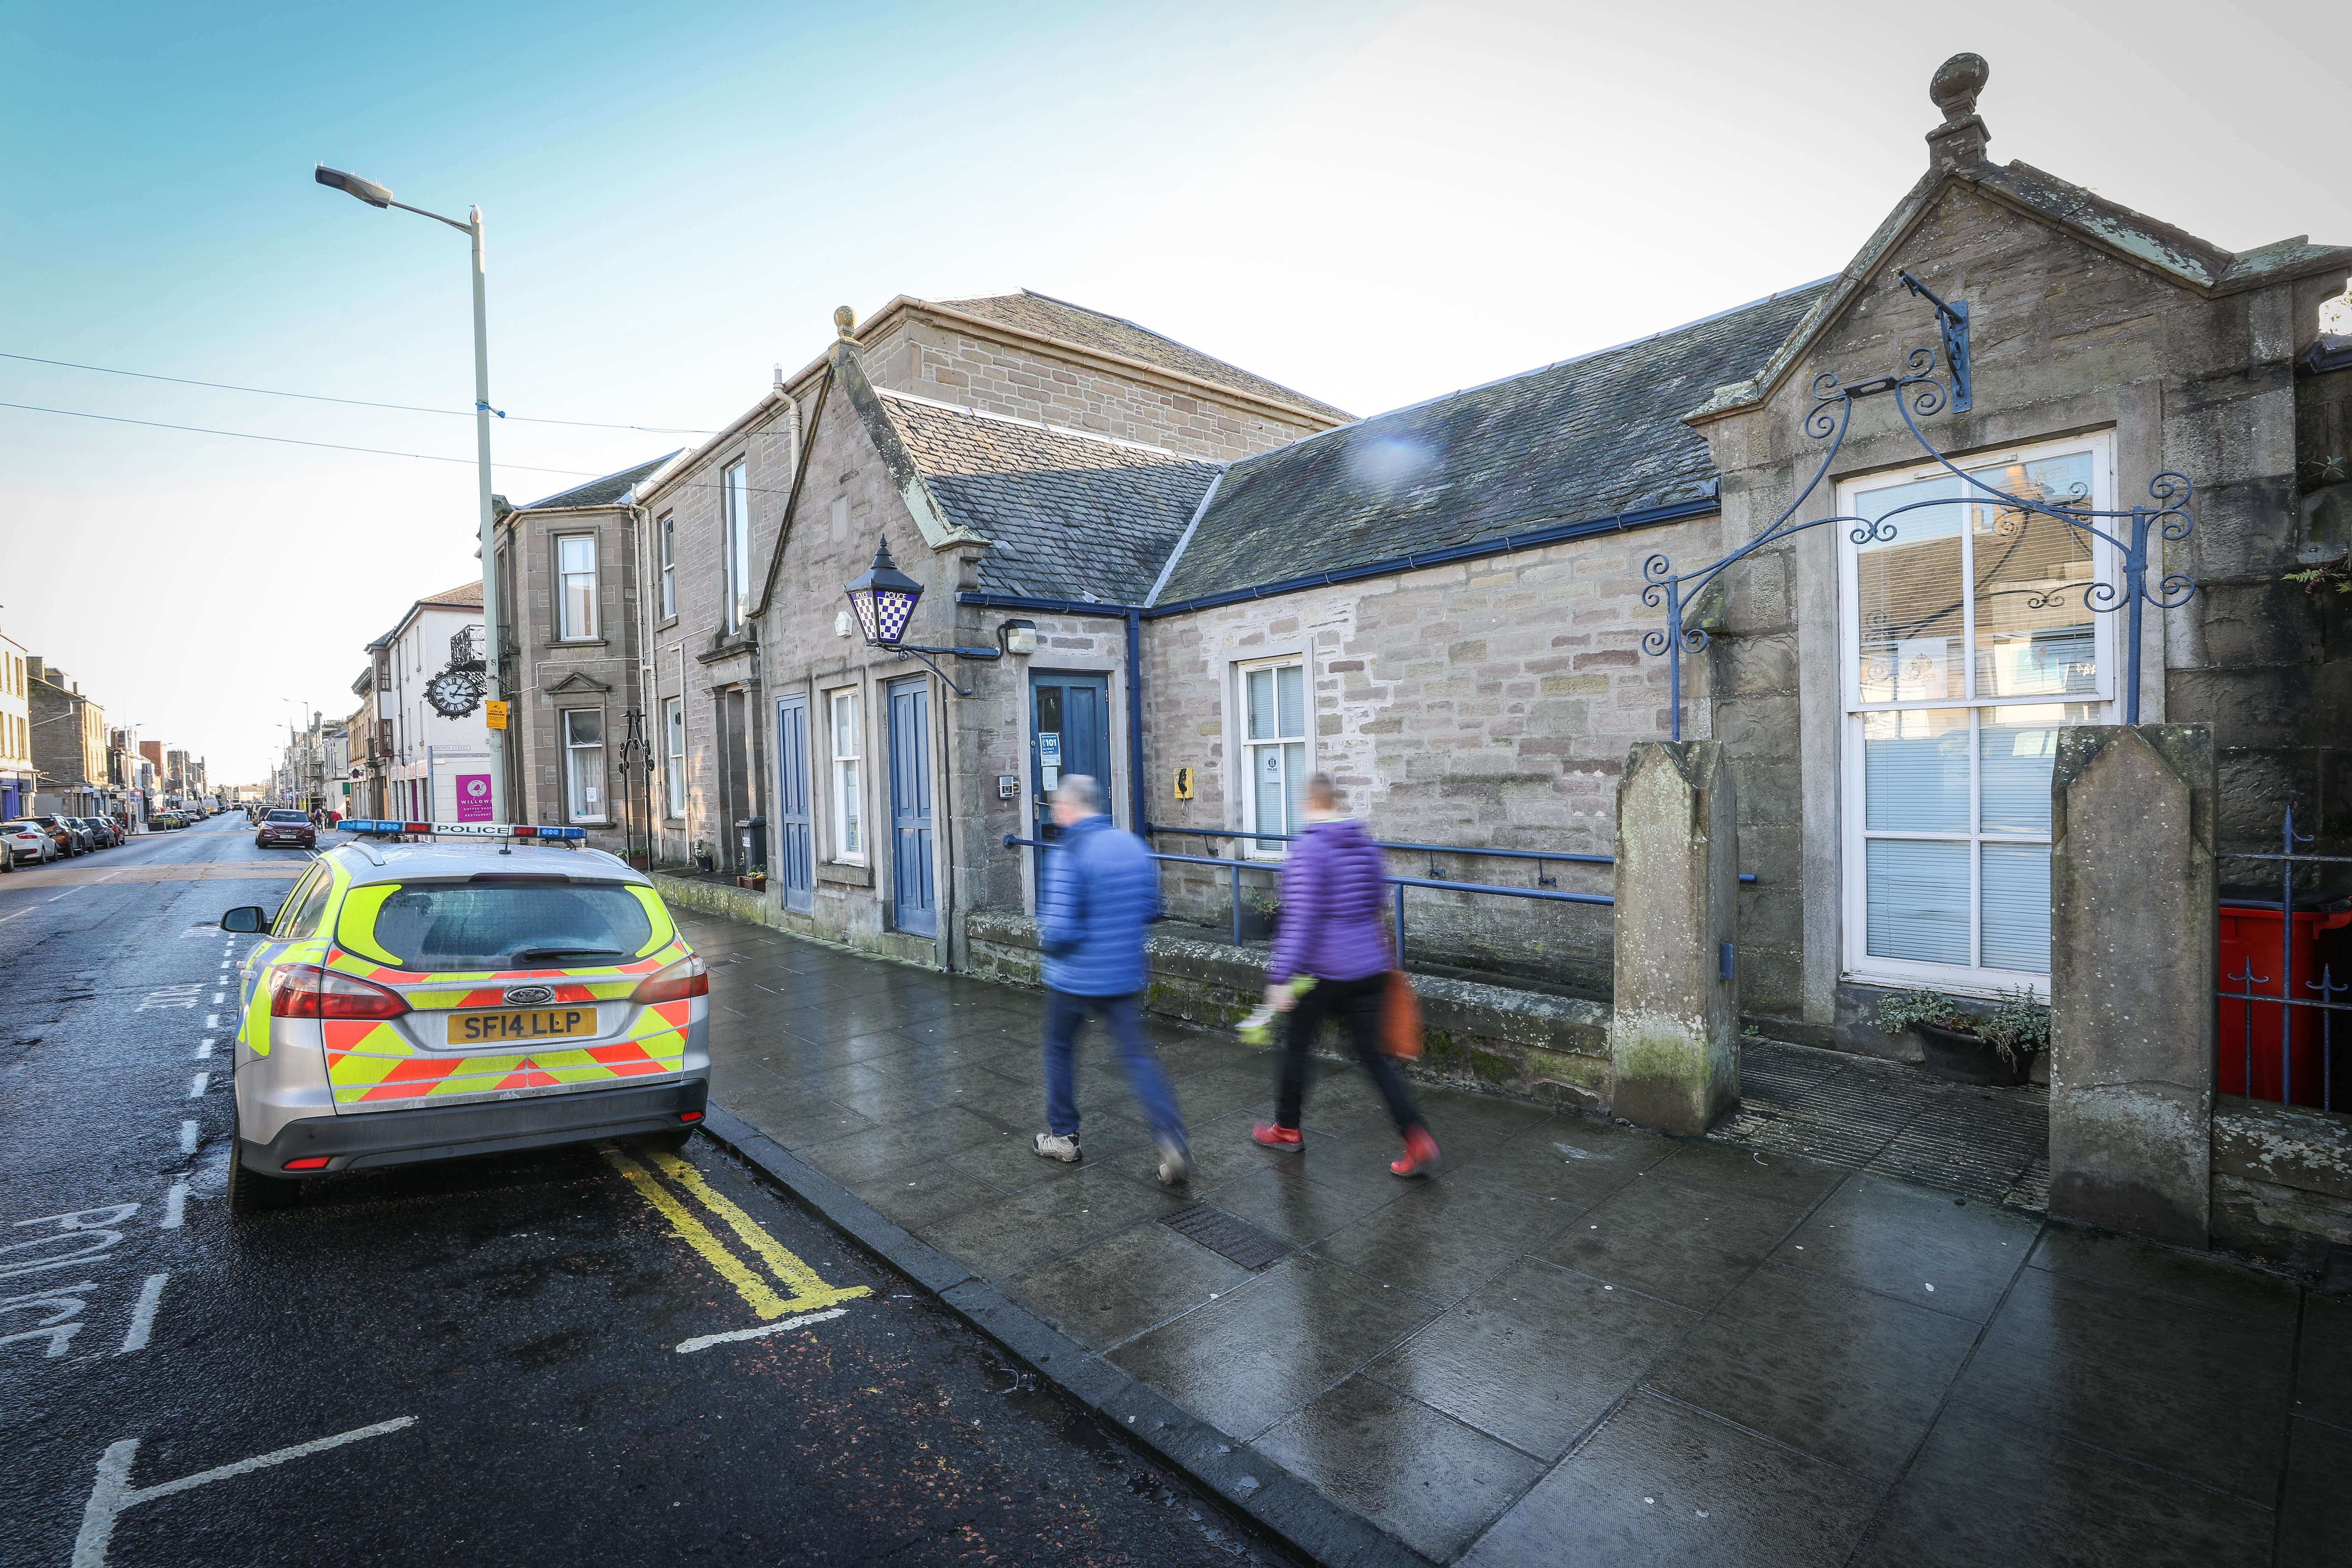 The row over police funding deepened after the ceiling of Broughty Ferry police station collapsed